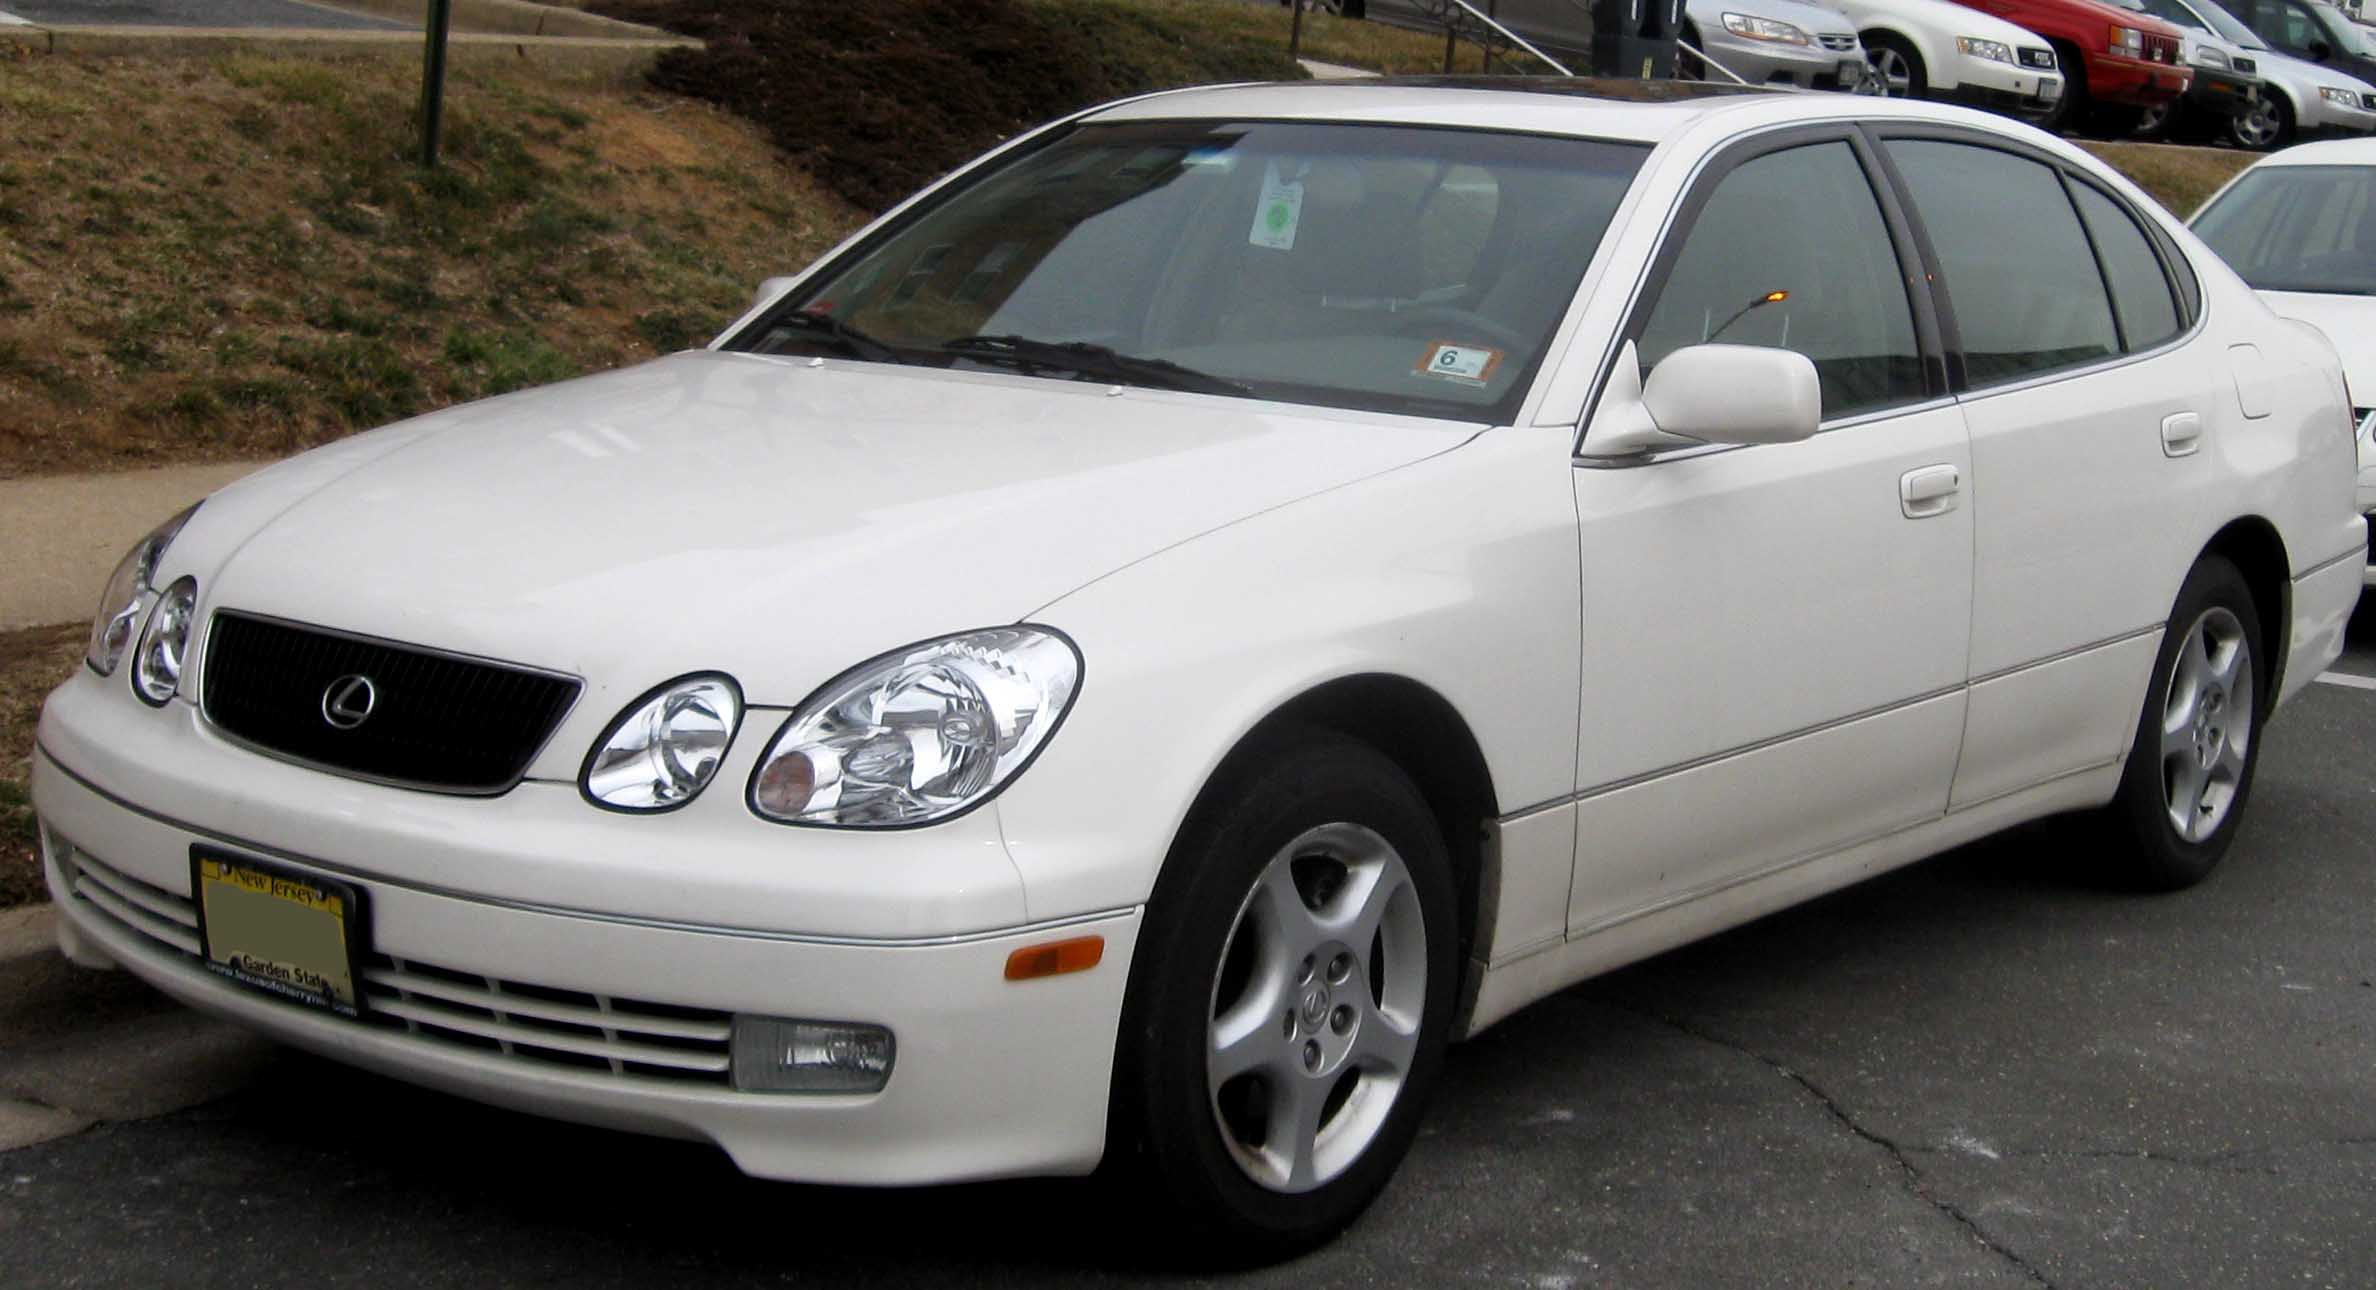 https://upload.wikimedia.org/wikipedia/commons/6/6a/98-00_Lexus_GS300.jpg